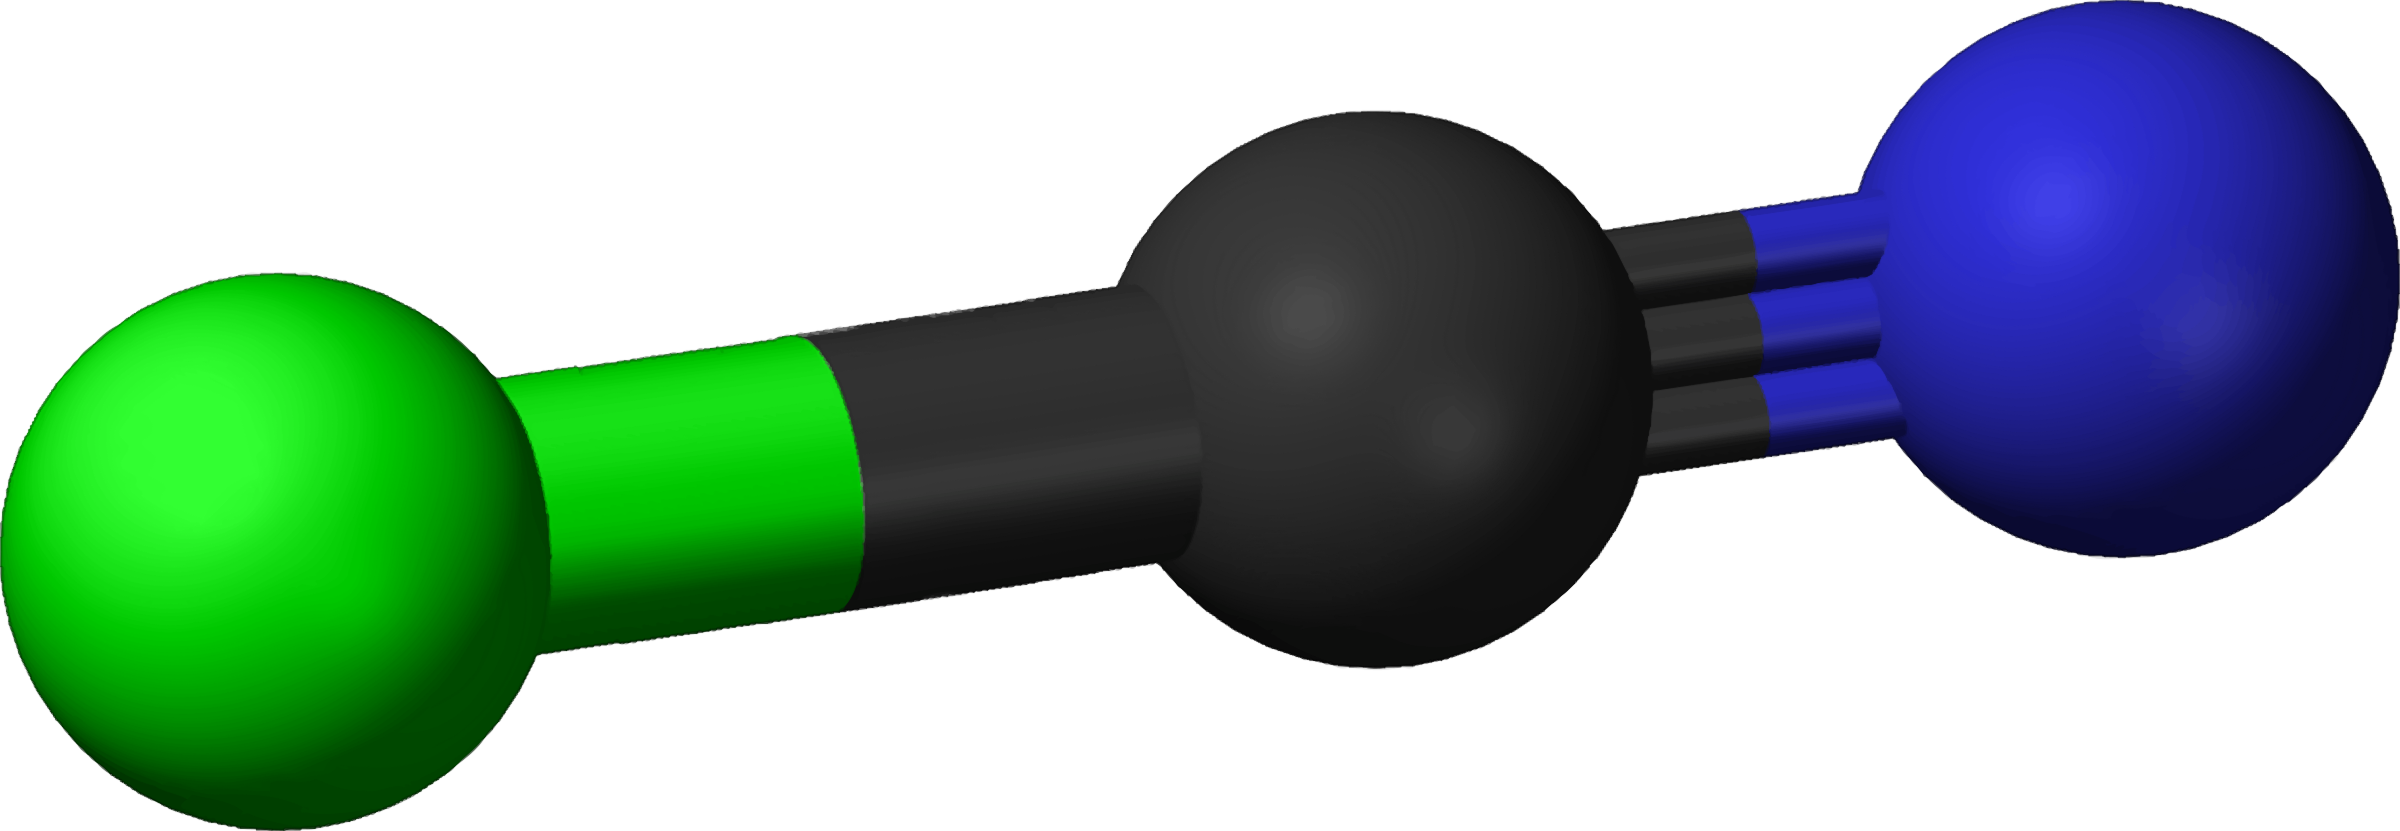 Famous (and infamous) molecules 10 - cyanogen chloride by Firkin